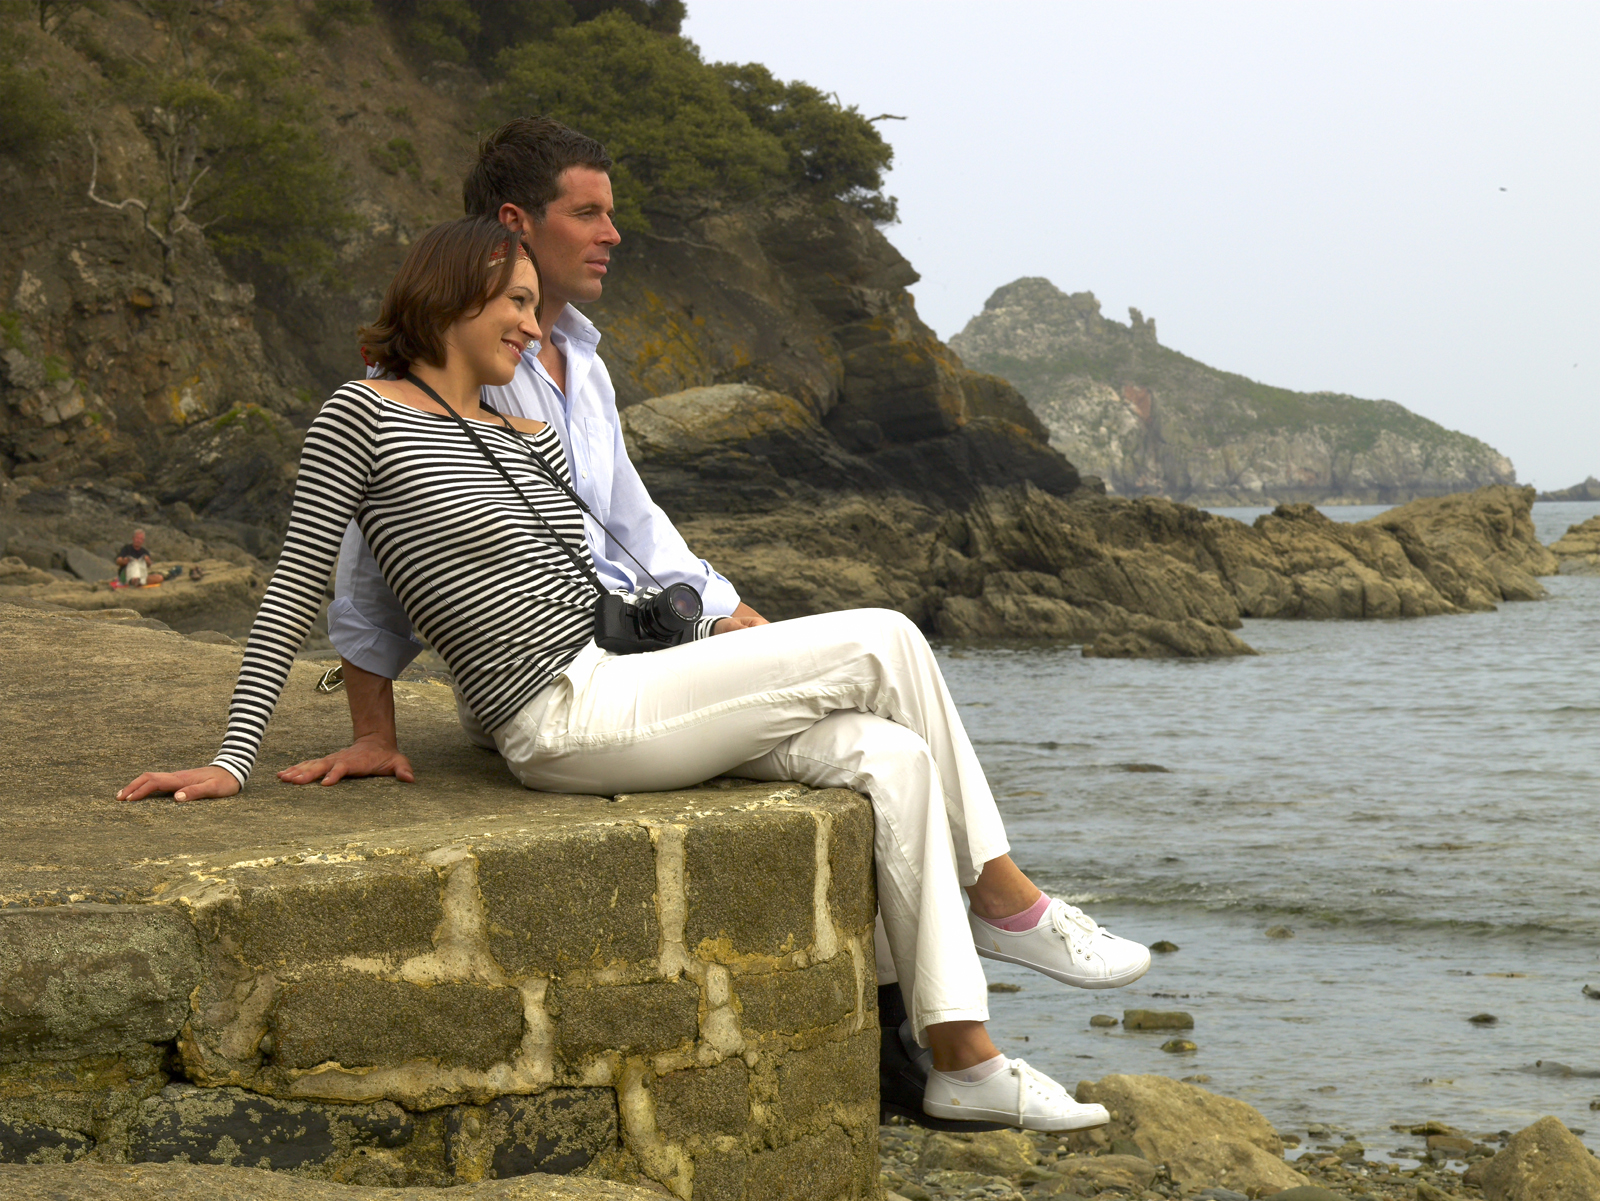 A young couple enjoying a romantic break on the beach in Torquay, Devon